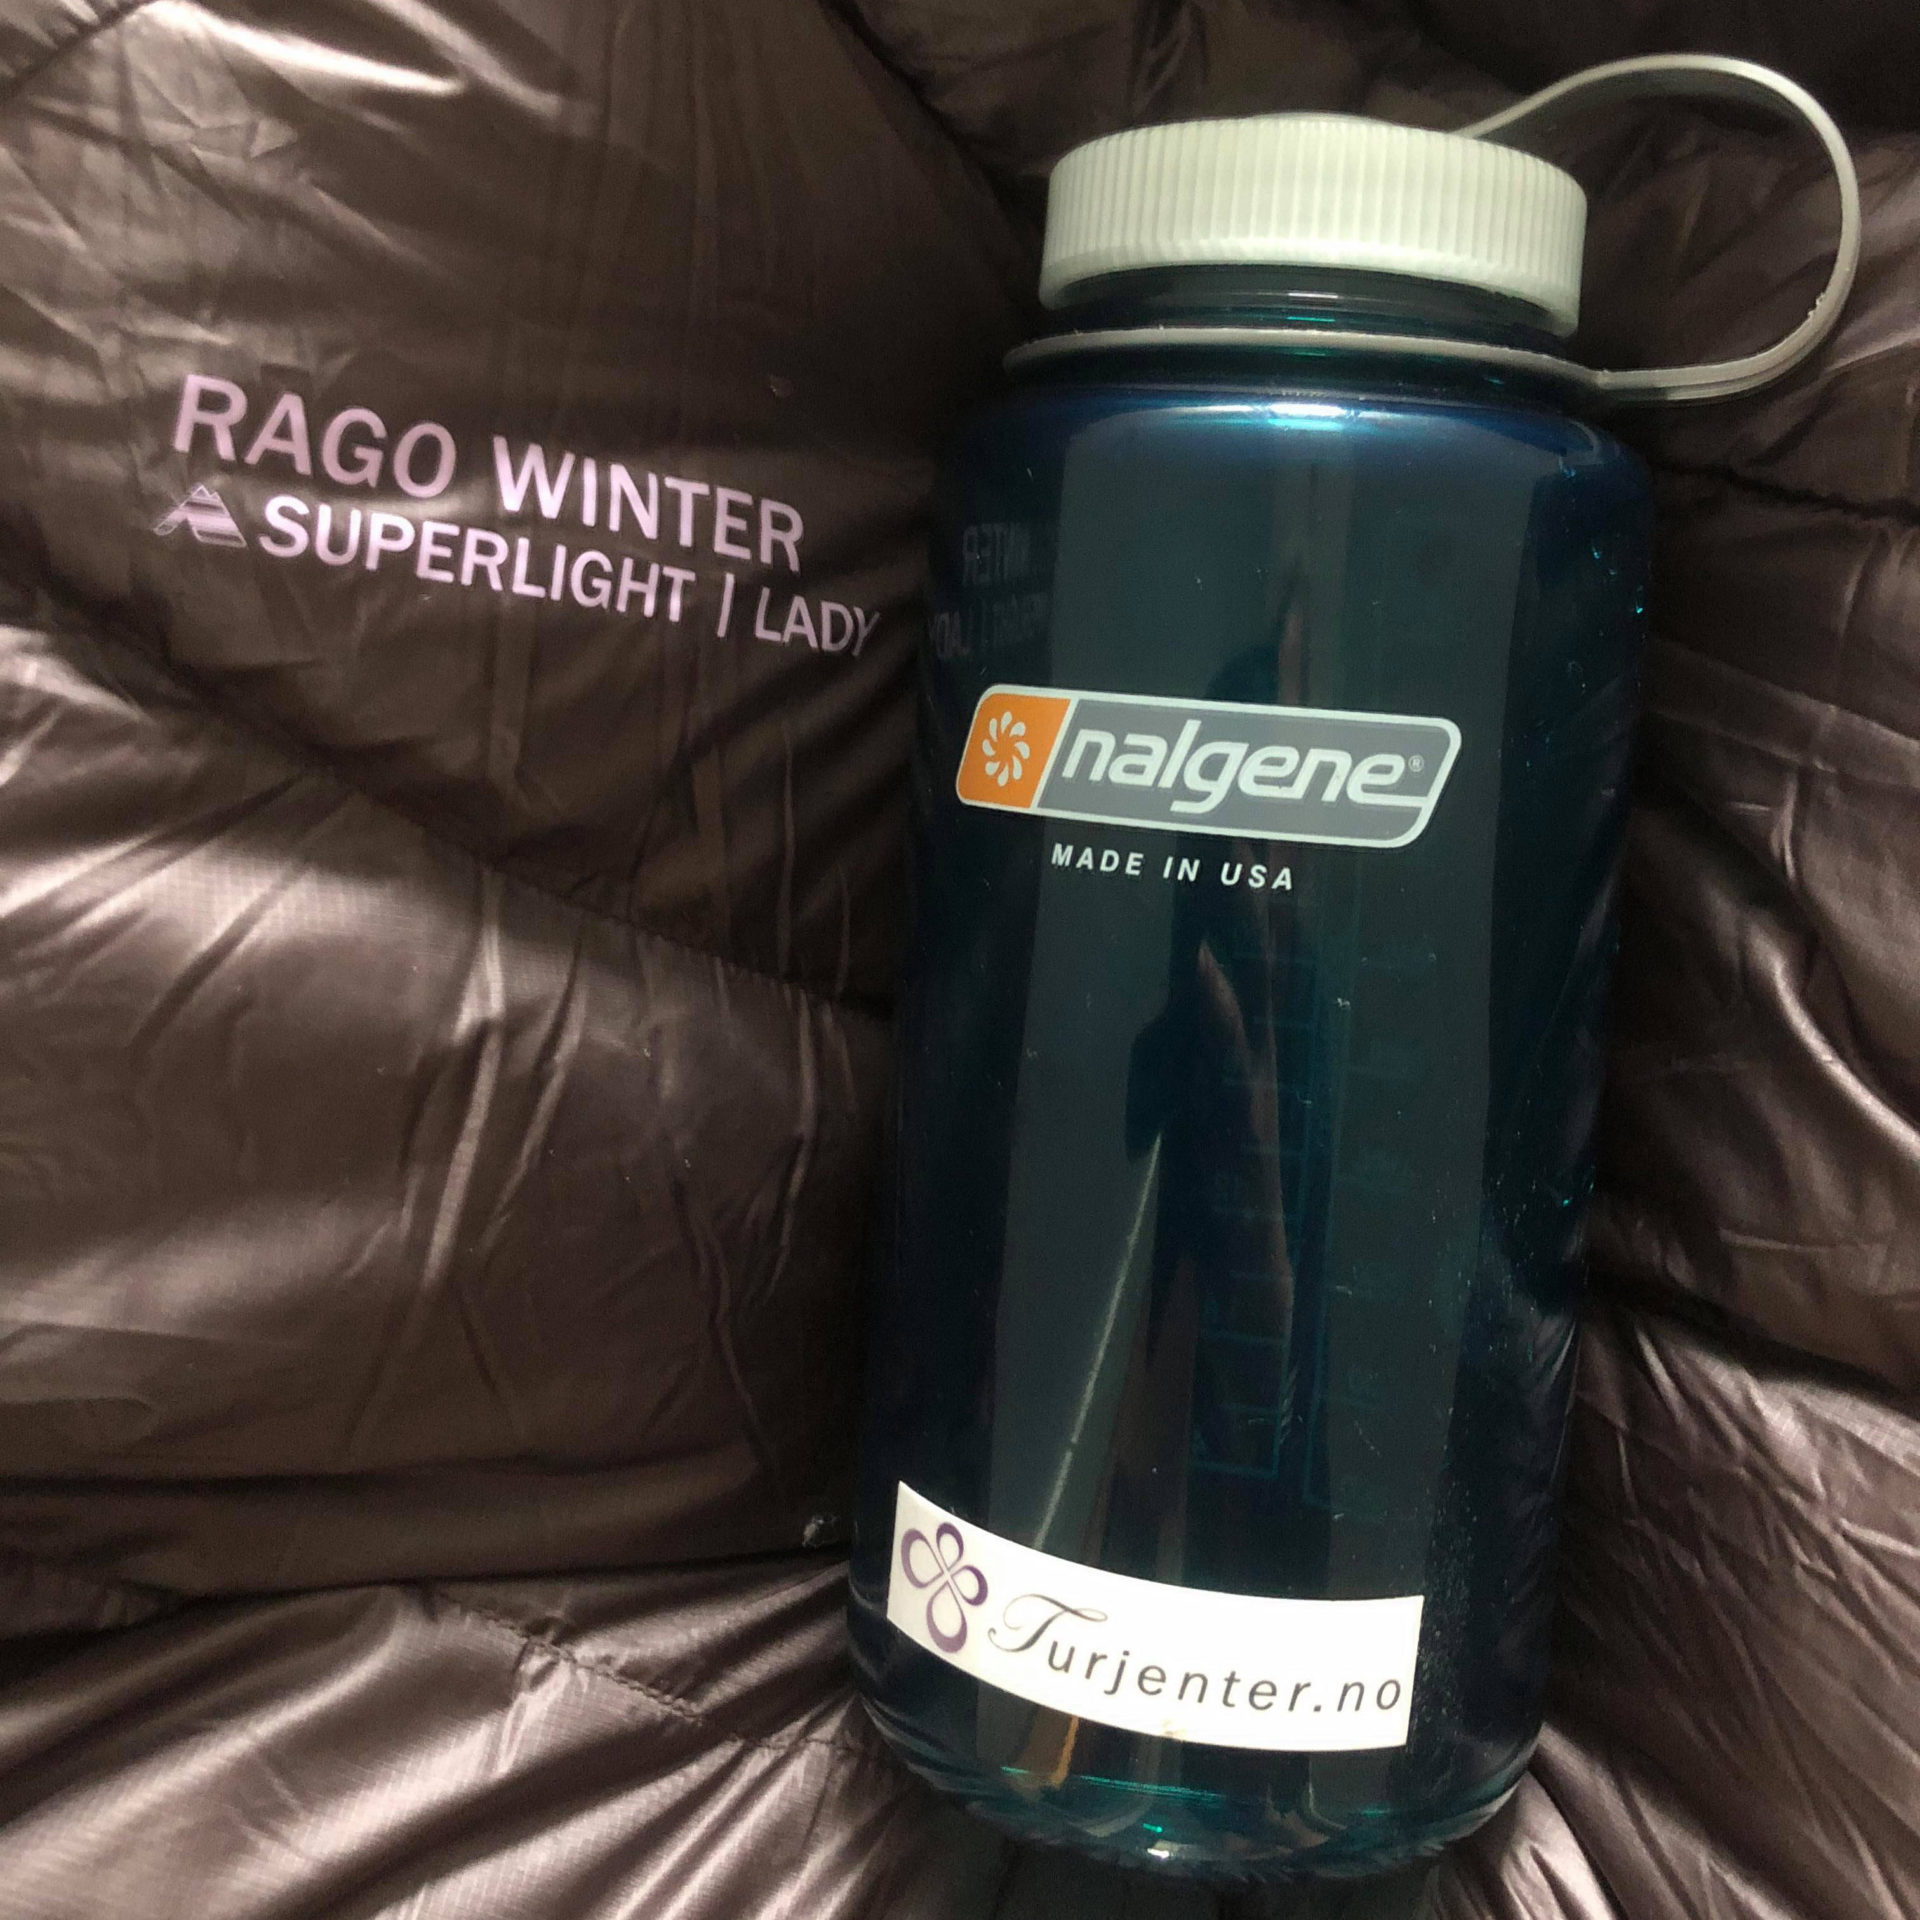 Rago Superlight Winter Lady Og Nalgene Varmeflaske